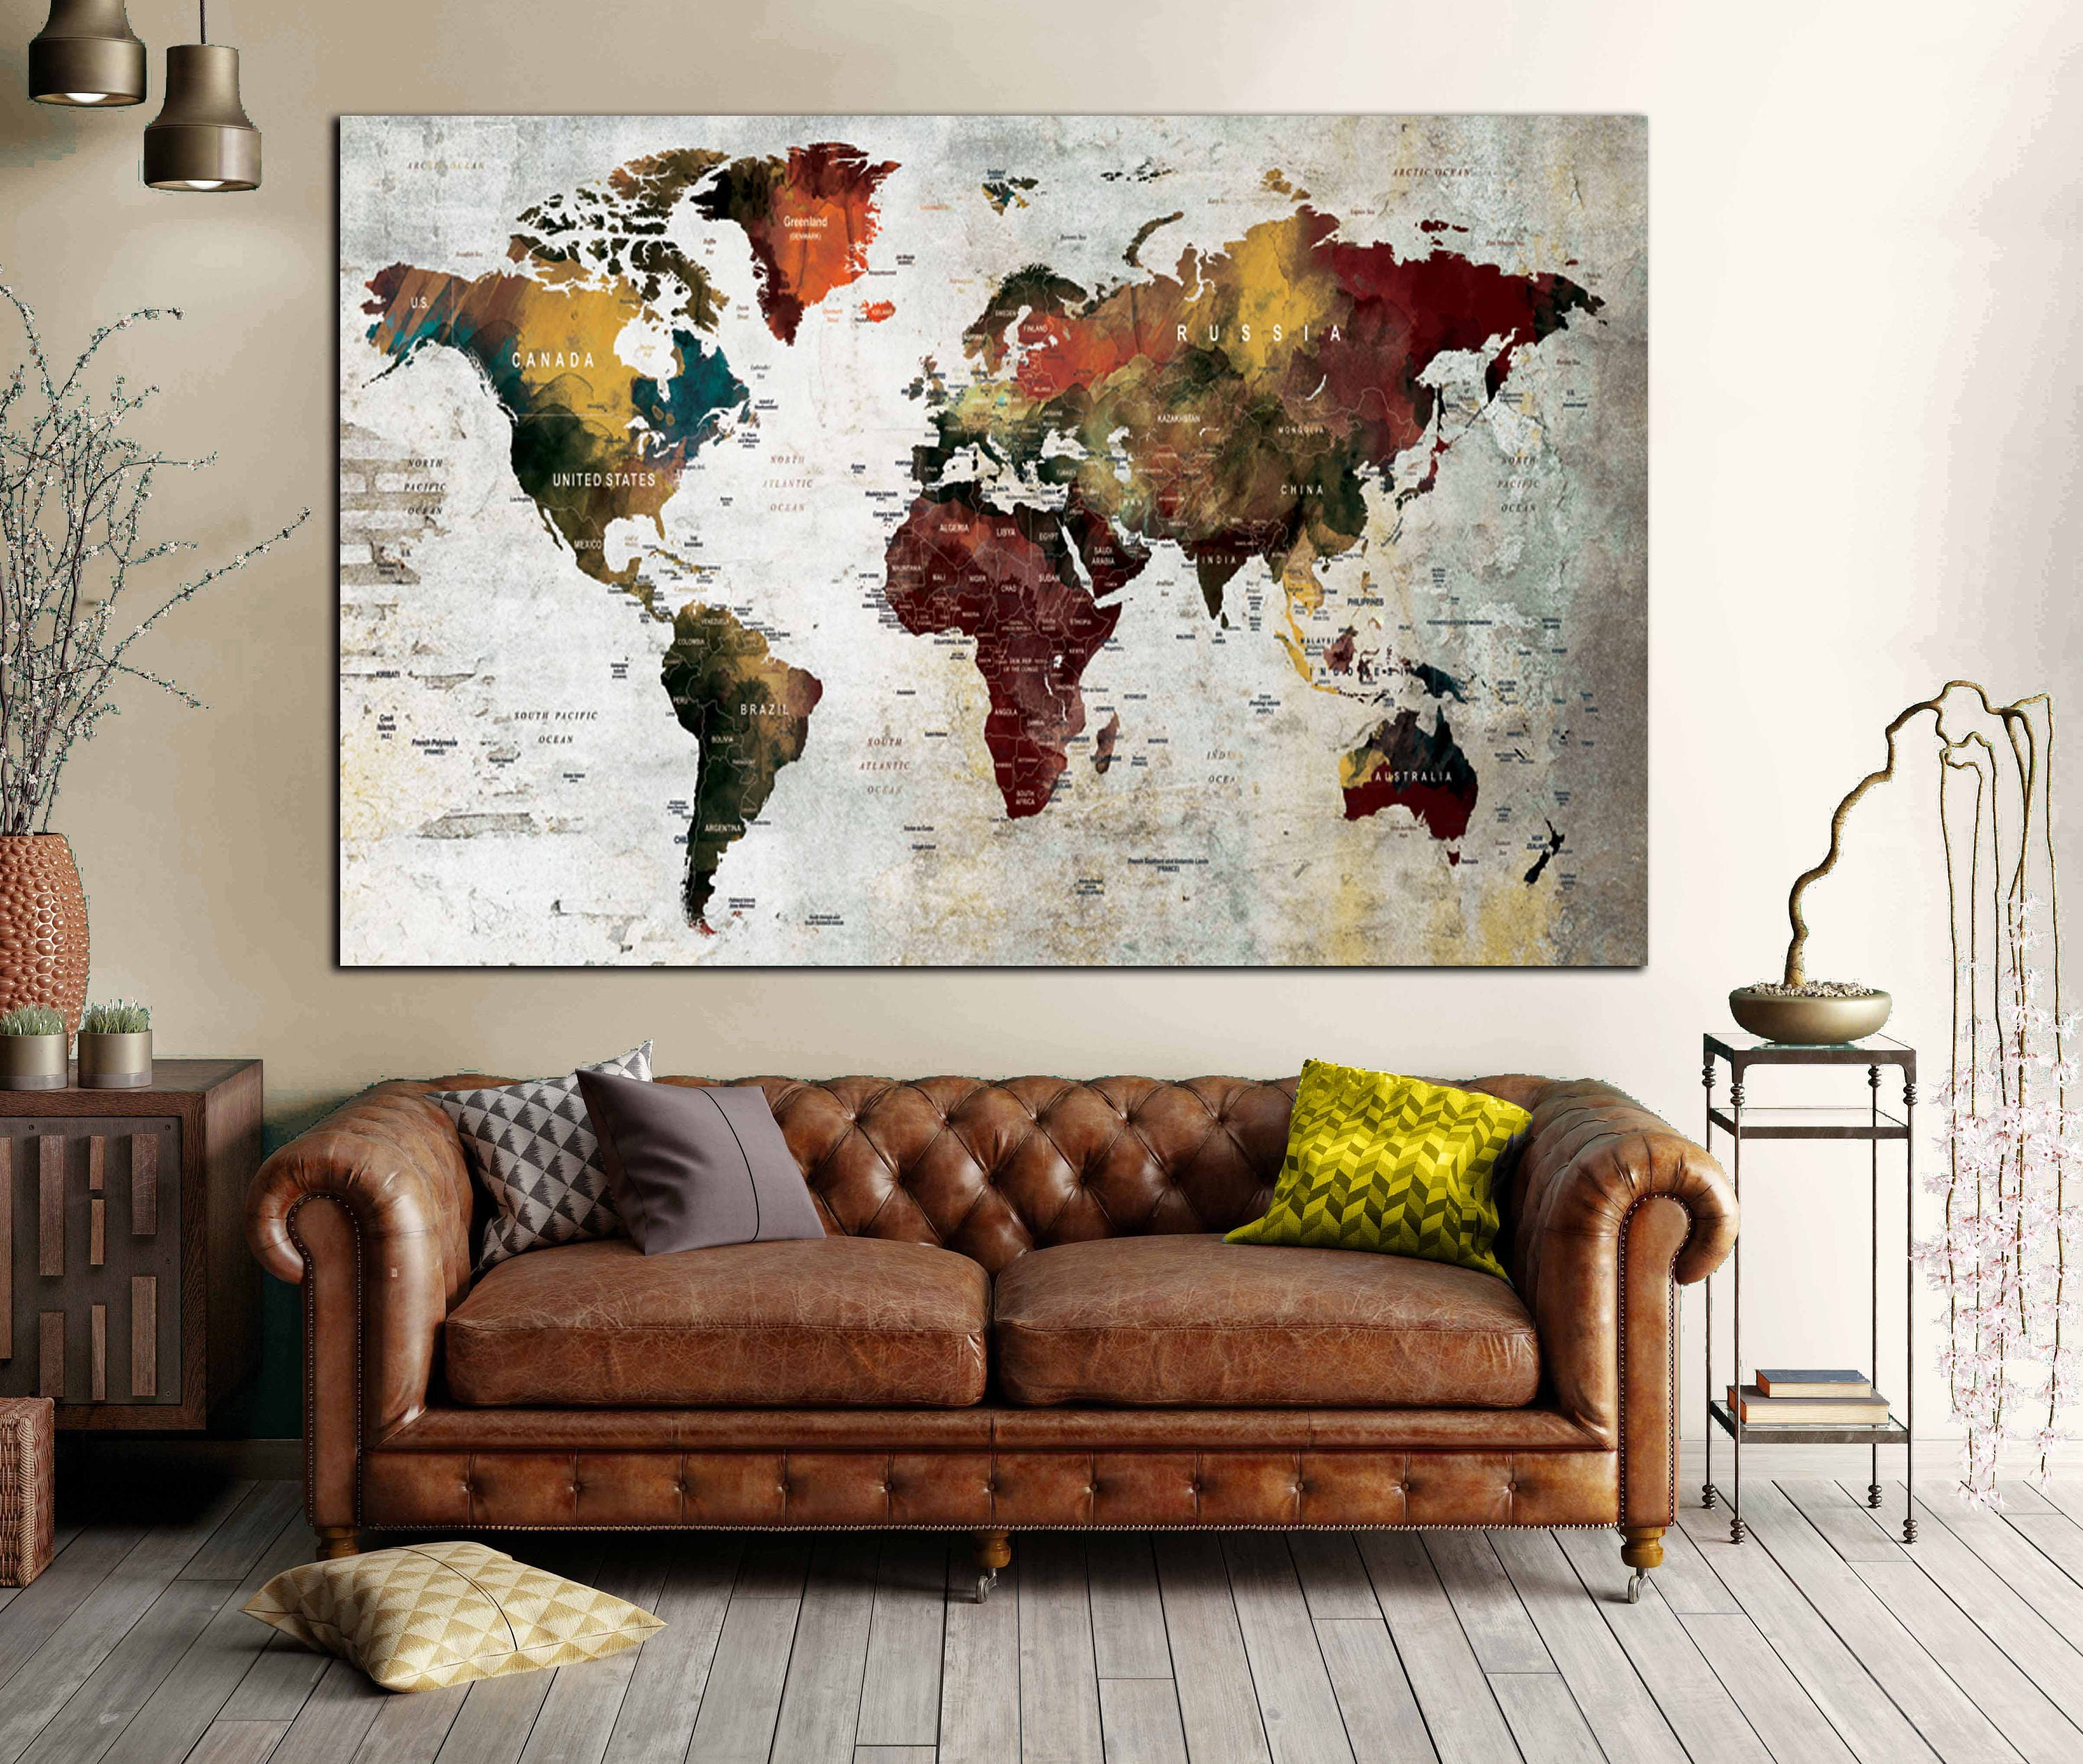 World map wall artworld map canvaslarge world mapworld map art world map wall artworld map canvaslarge world mapworld map artworld maptravel mappushpin map world map abstractworld map custom print gumiabroncs Images